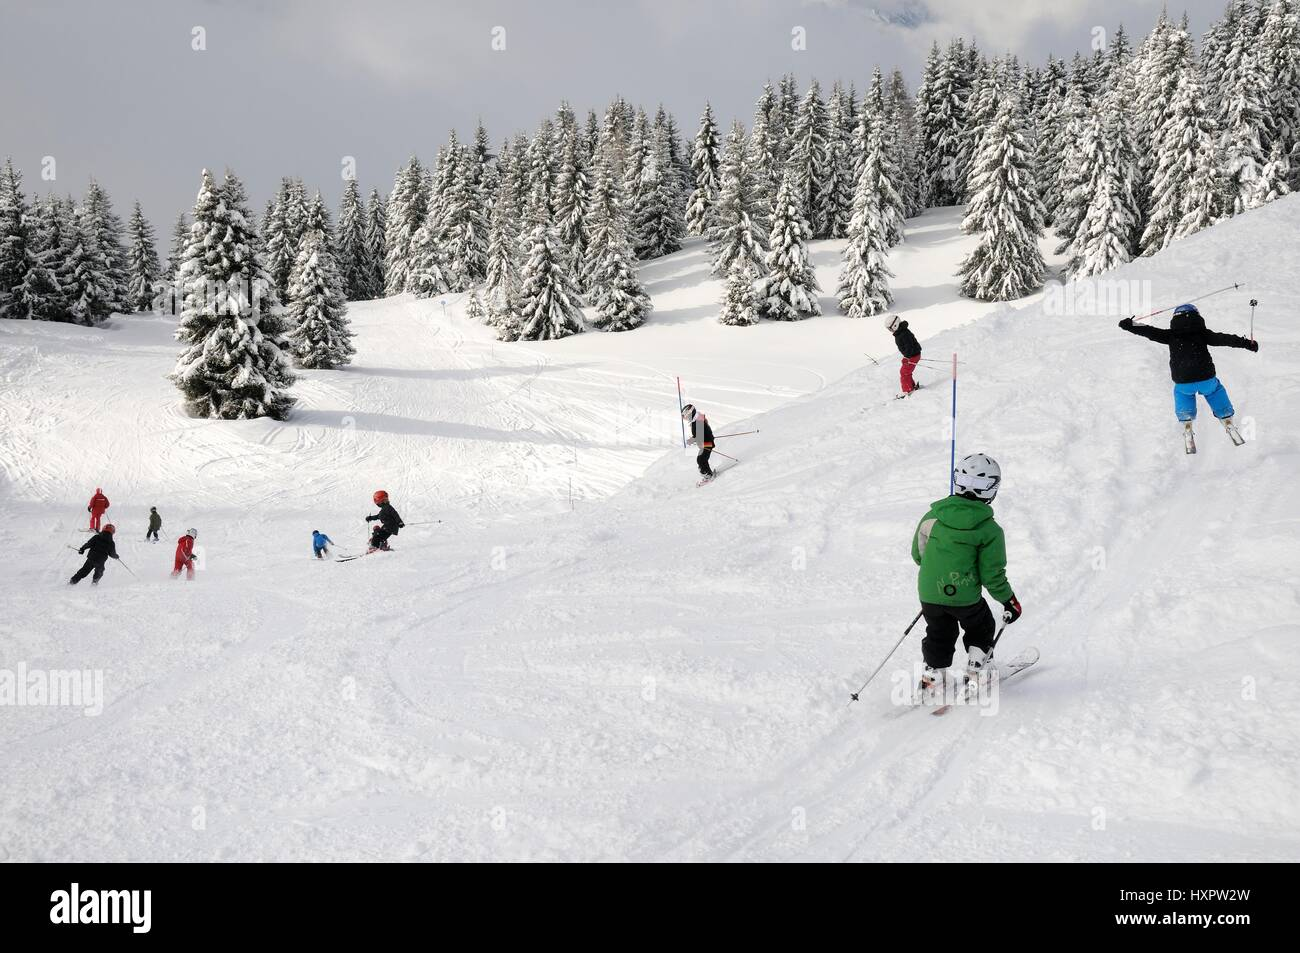 Ski school group of children following instructor down a piste, Les Houches, Savoie, France, February. - Stock Image